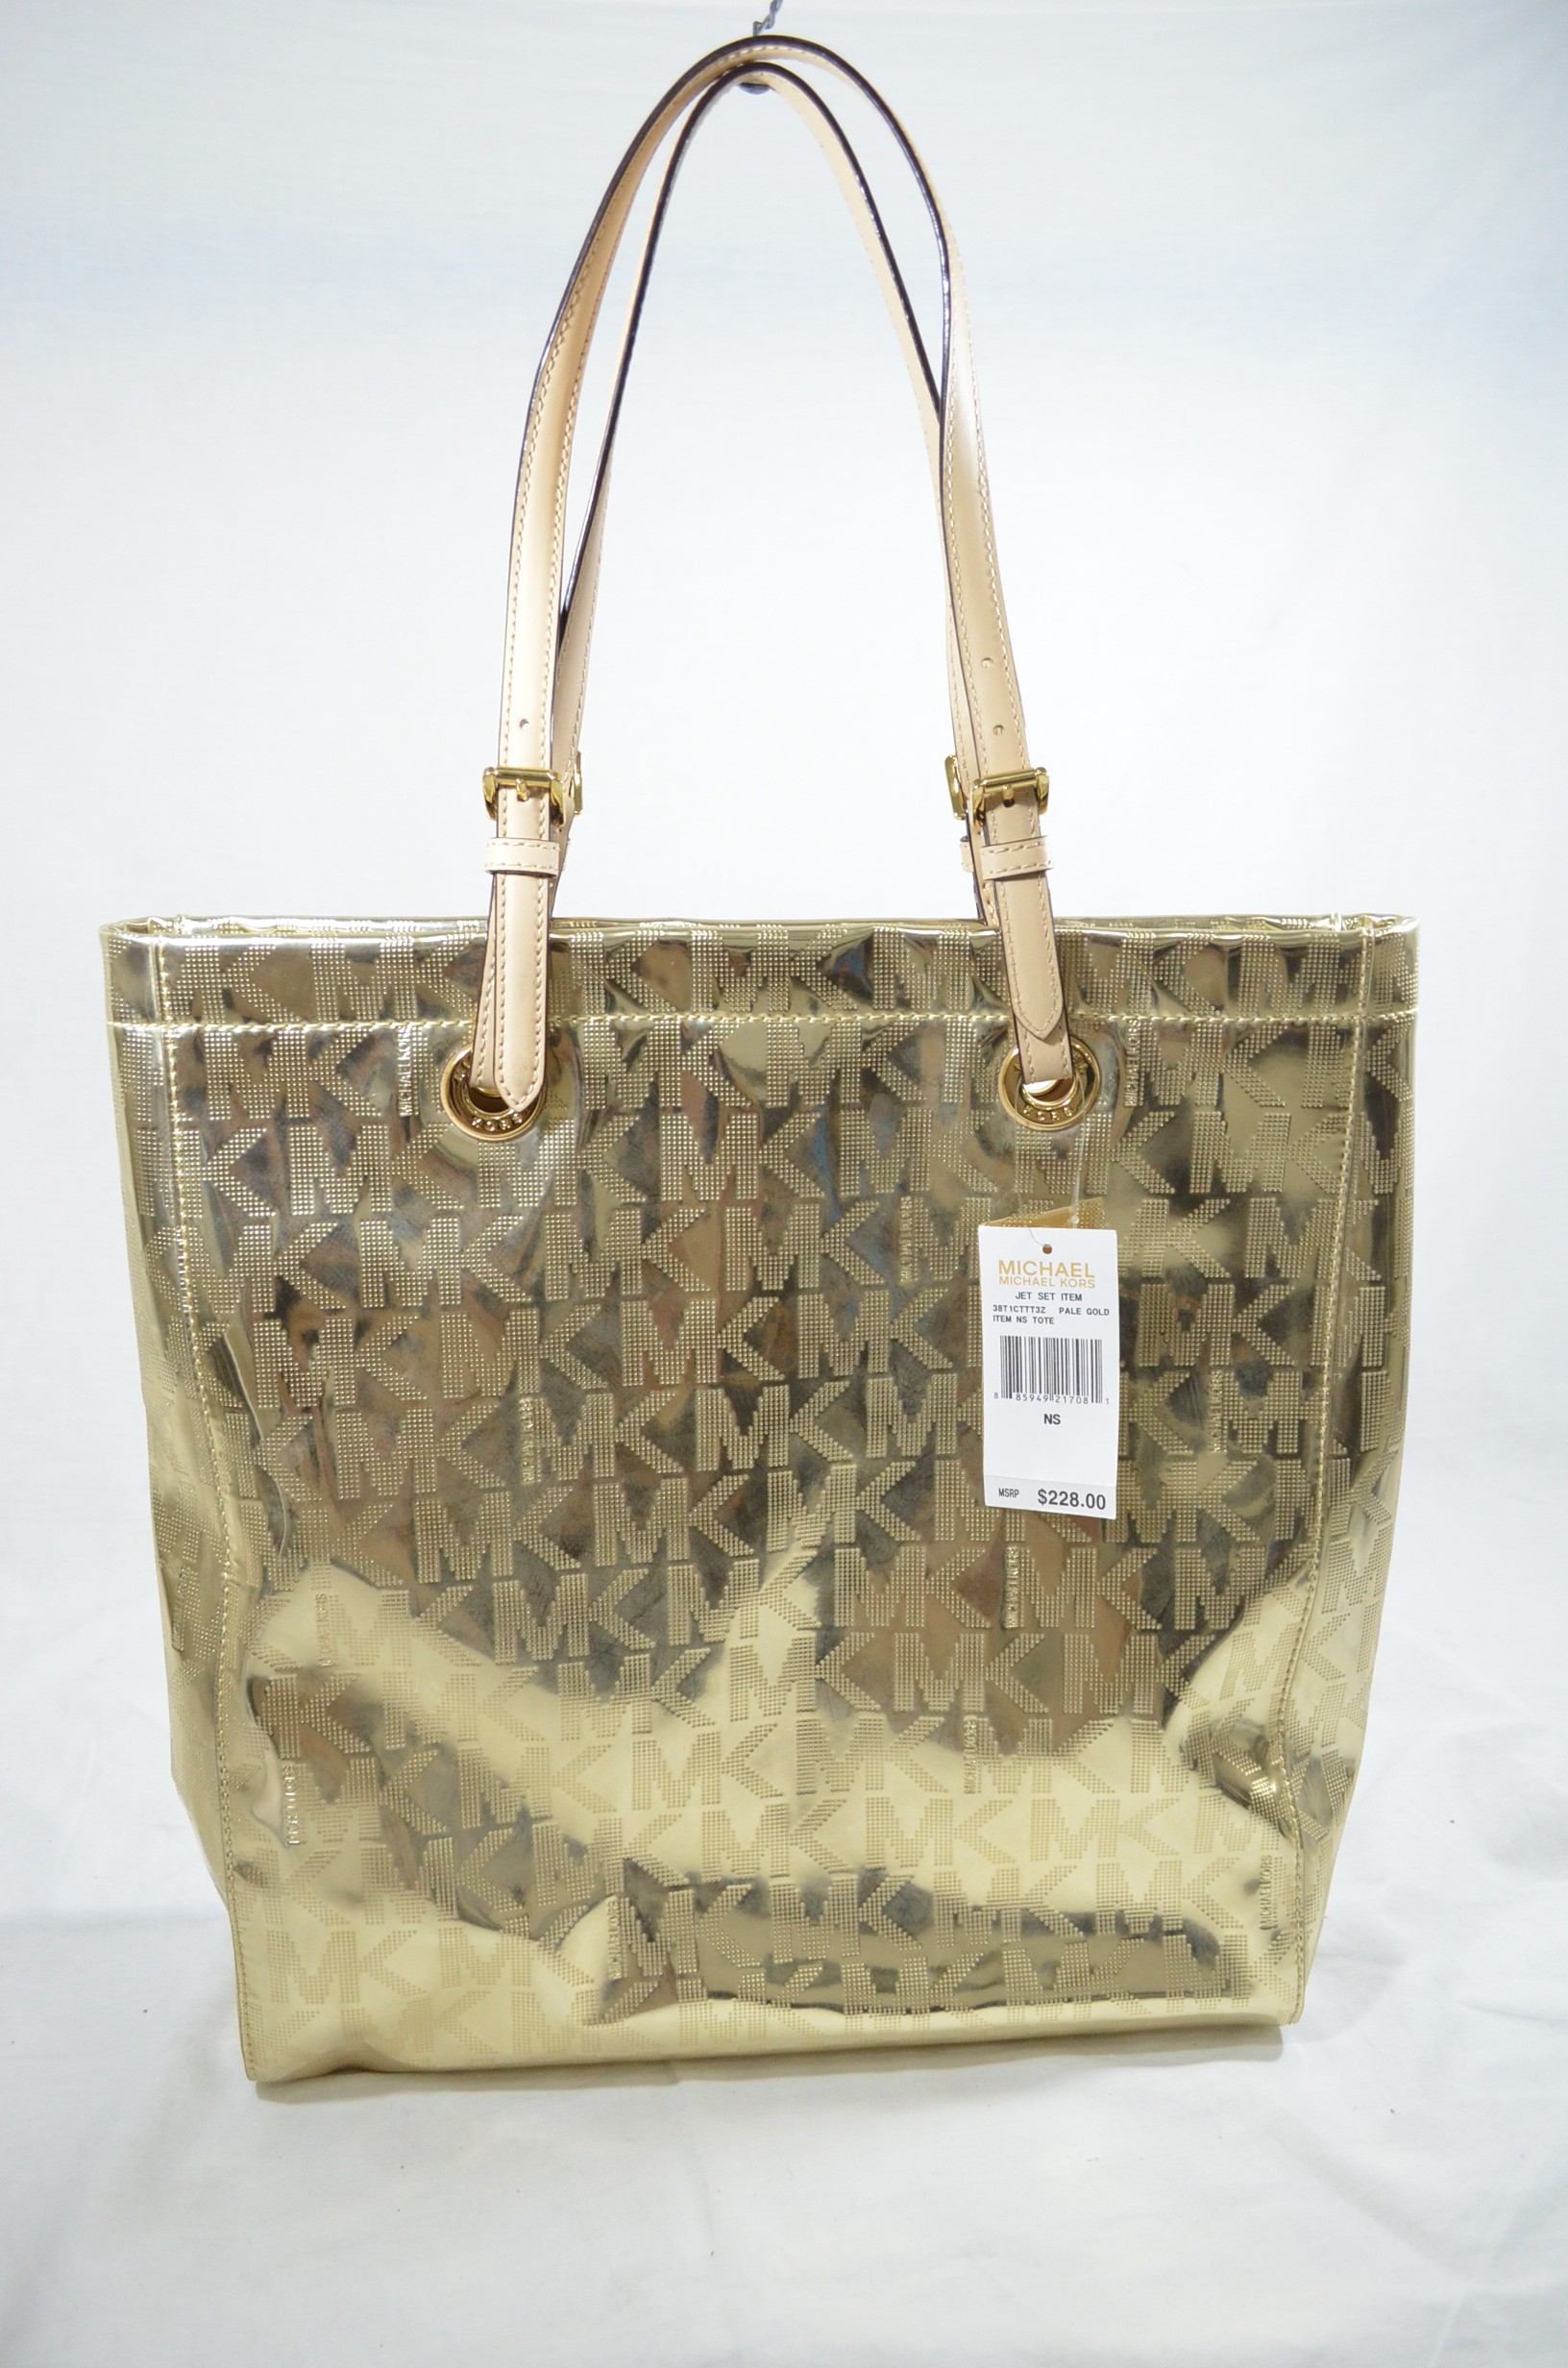 Michael kors tote bags philippines -  Tote Mk Signature Mirror Metallic Pale Gold Lightbox Moreview